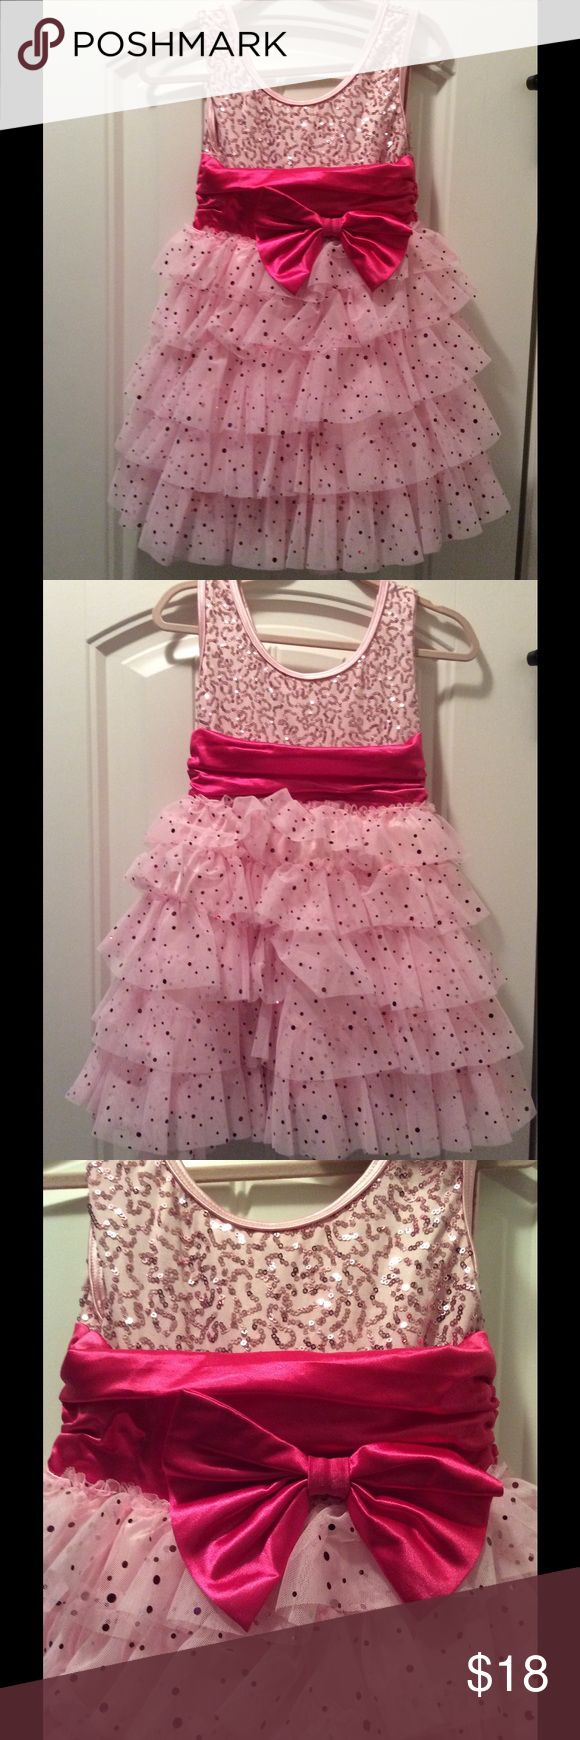 Weissman girls dance costume Beautiful pink girls dance costume with matching hair bow💕💕💕 only wore twice---great condition!!! weissman Costumes Dance